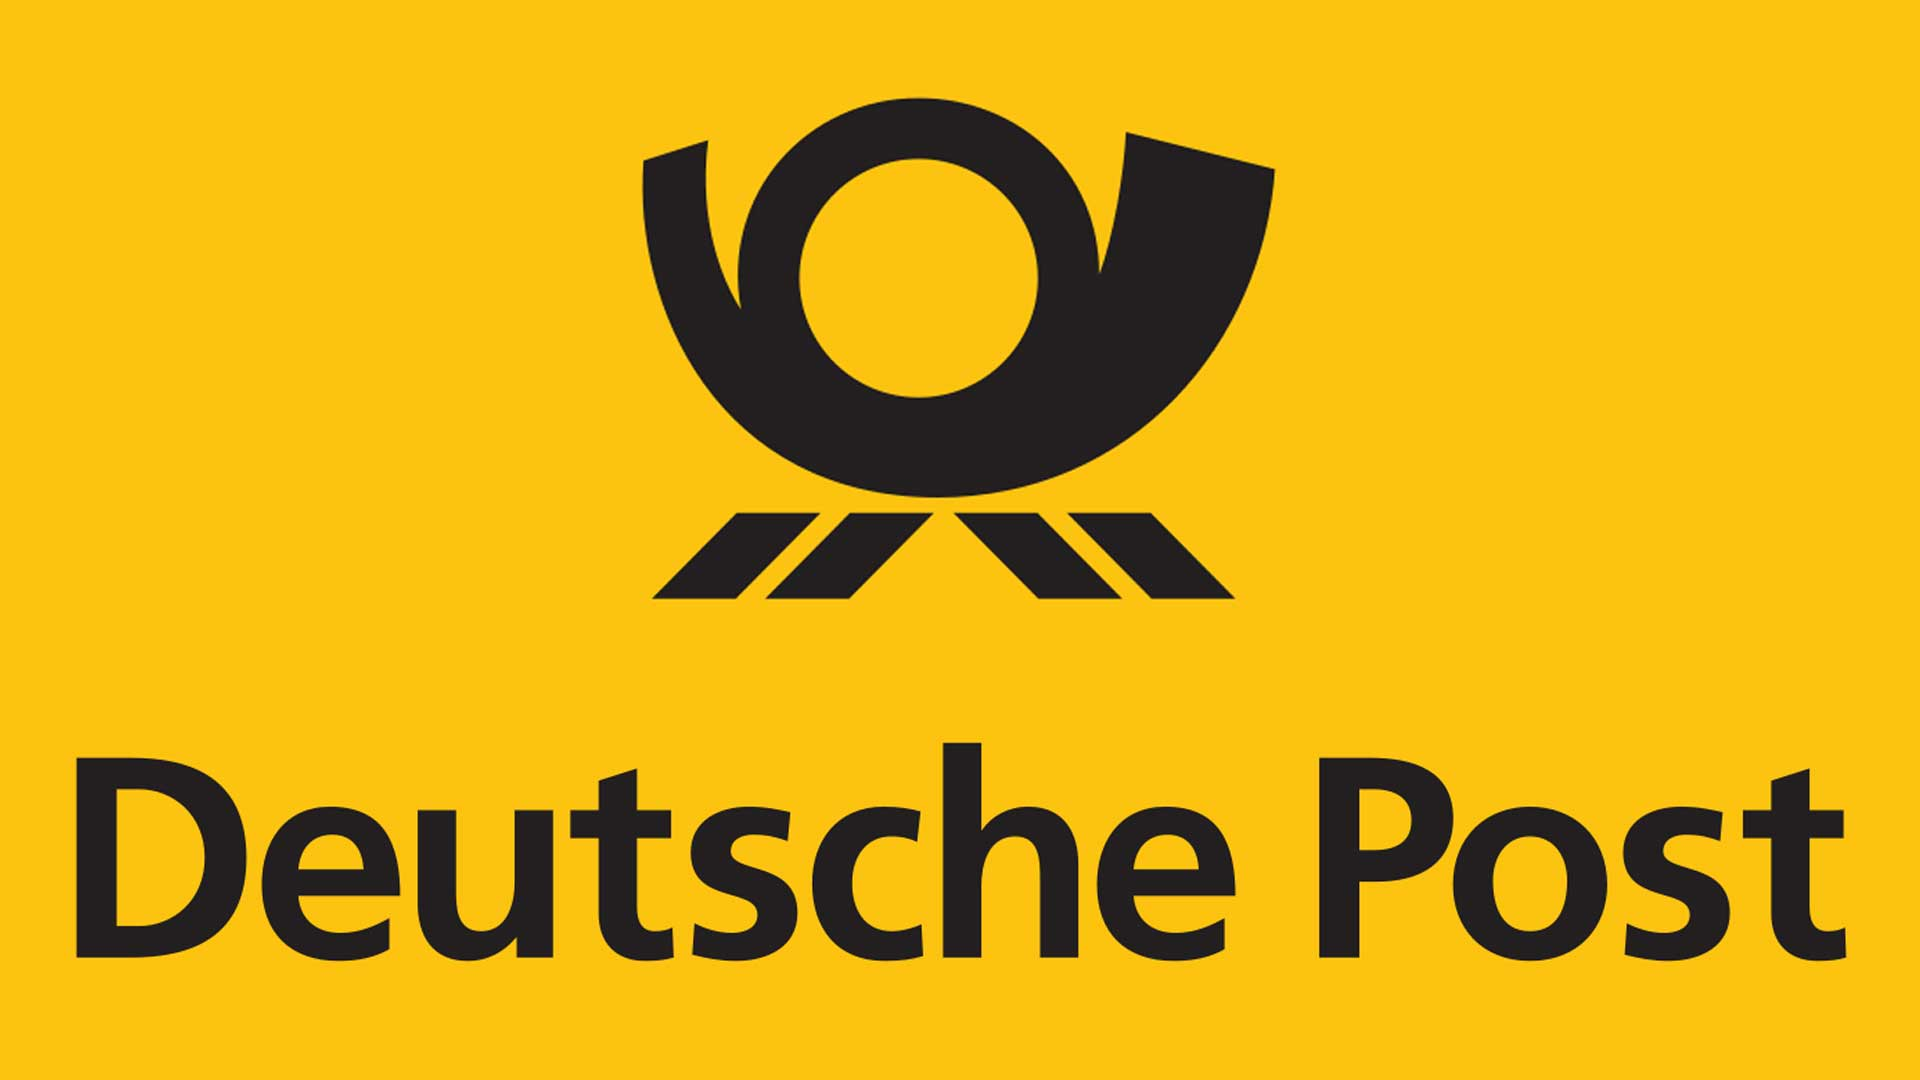 Postcode Deutsch